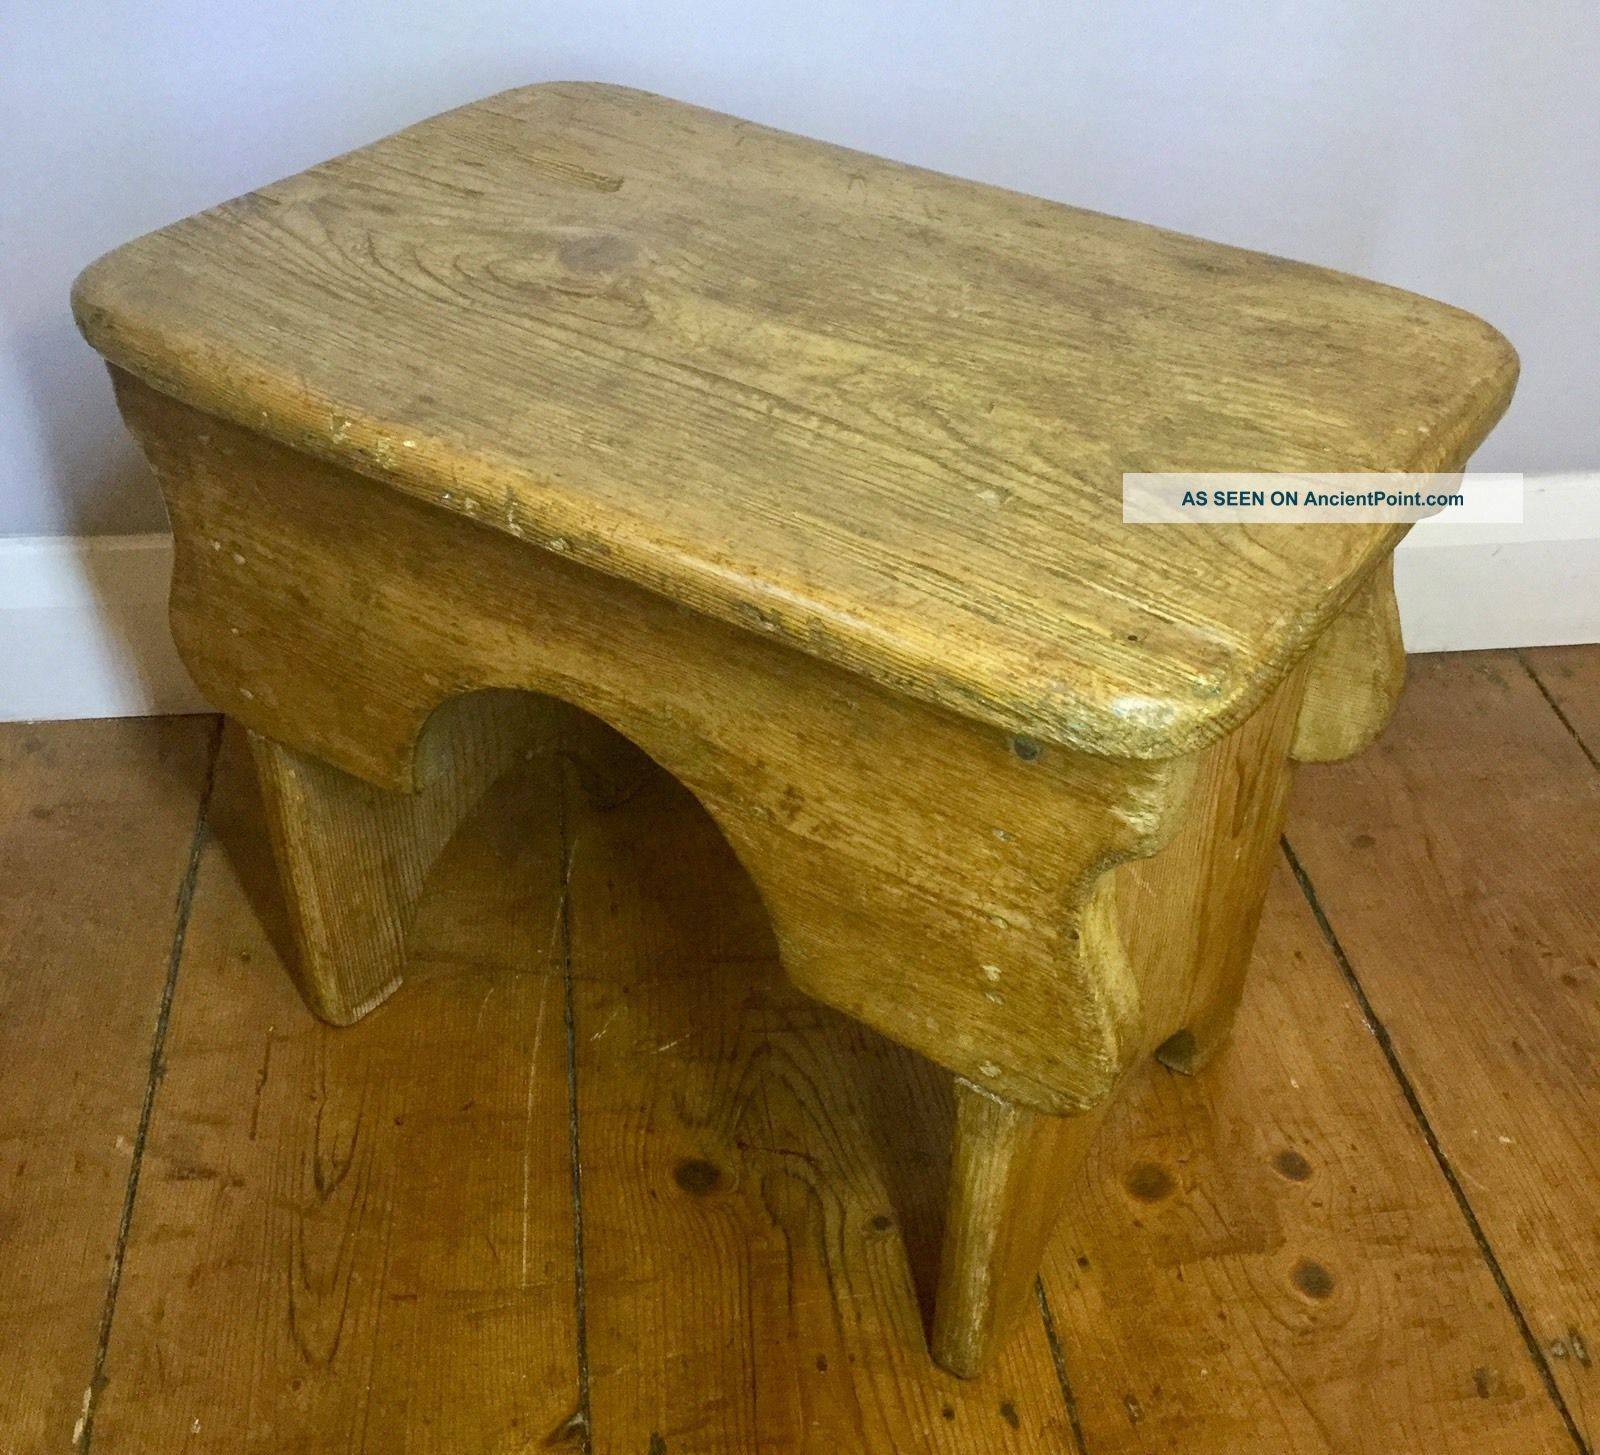 Antique Vintage Rustic Pine Milking Stool Table Traditional English Country Wood 1900-1950 photo